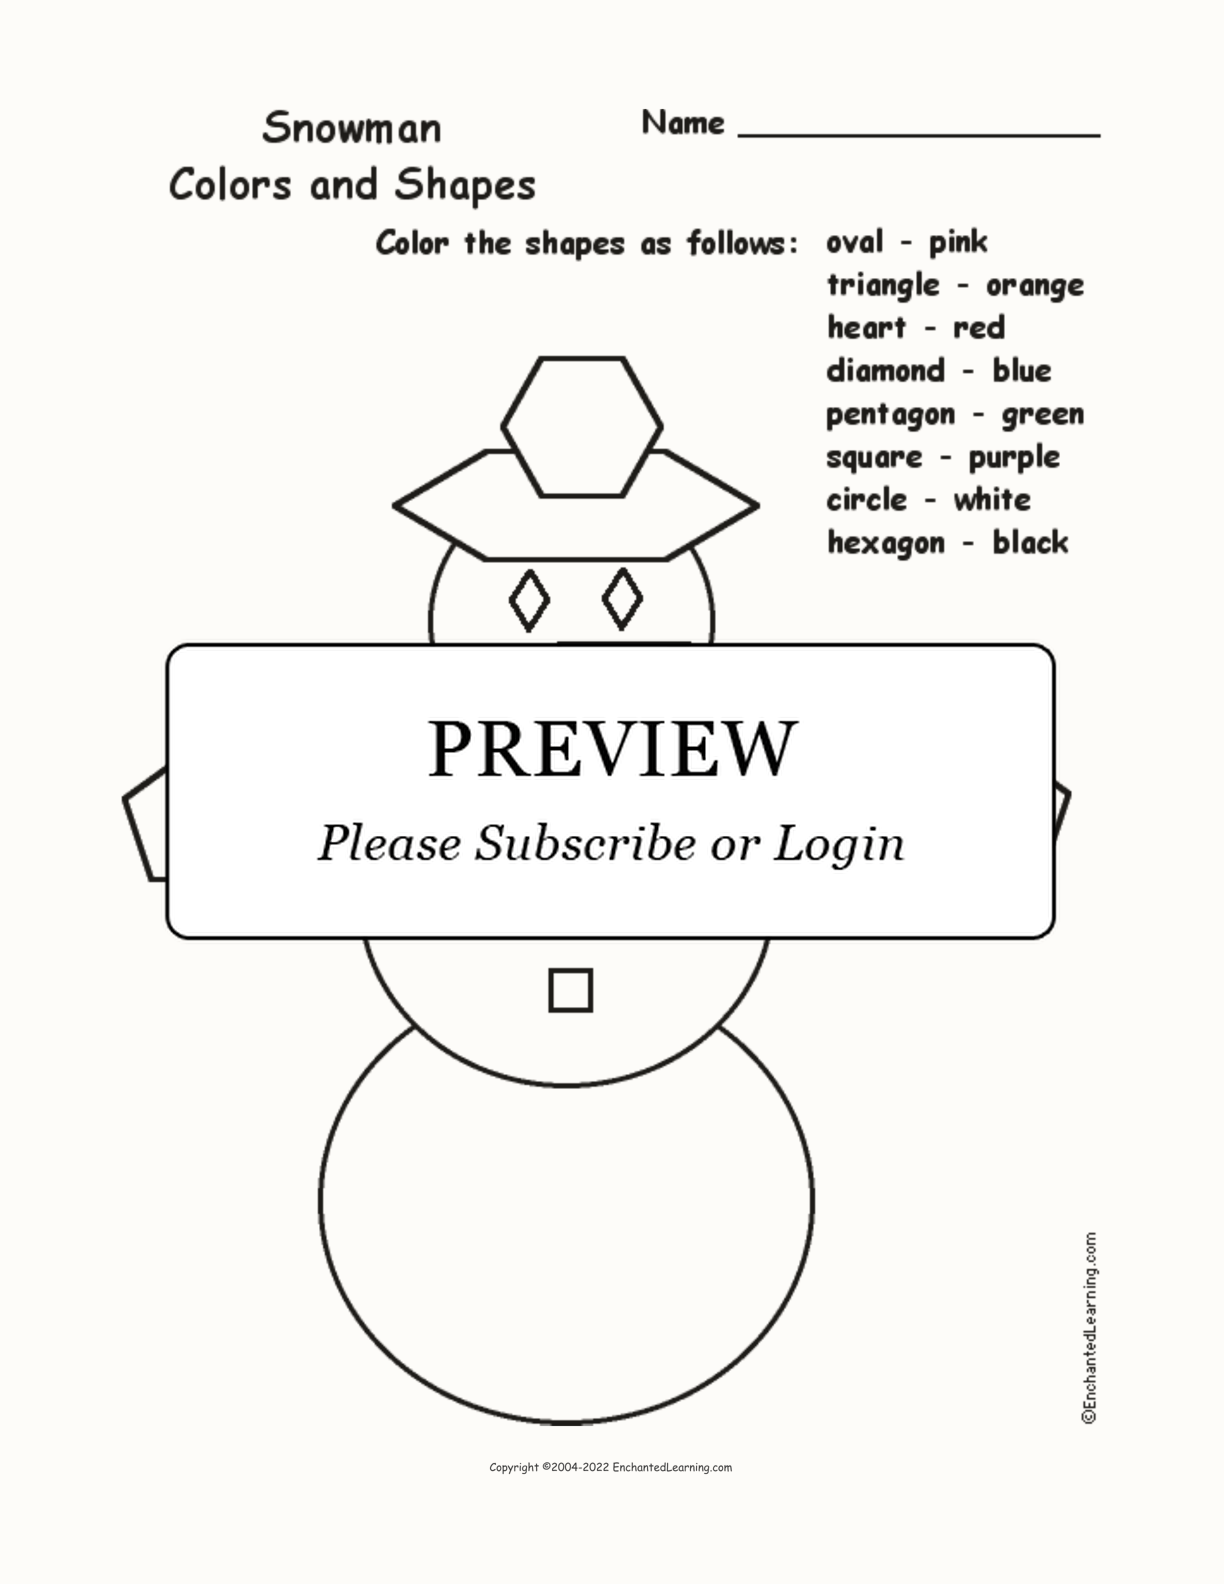 Snowman Colors And Shapes